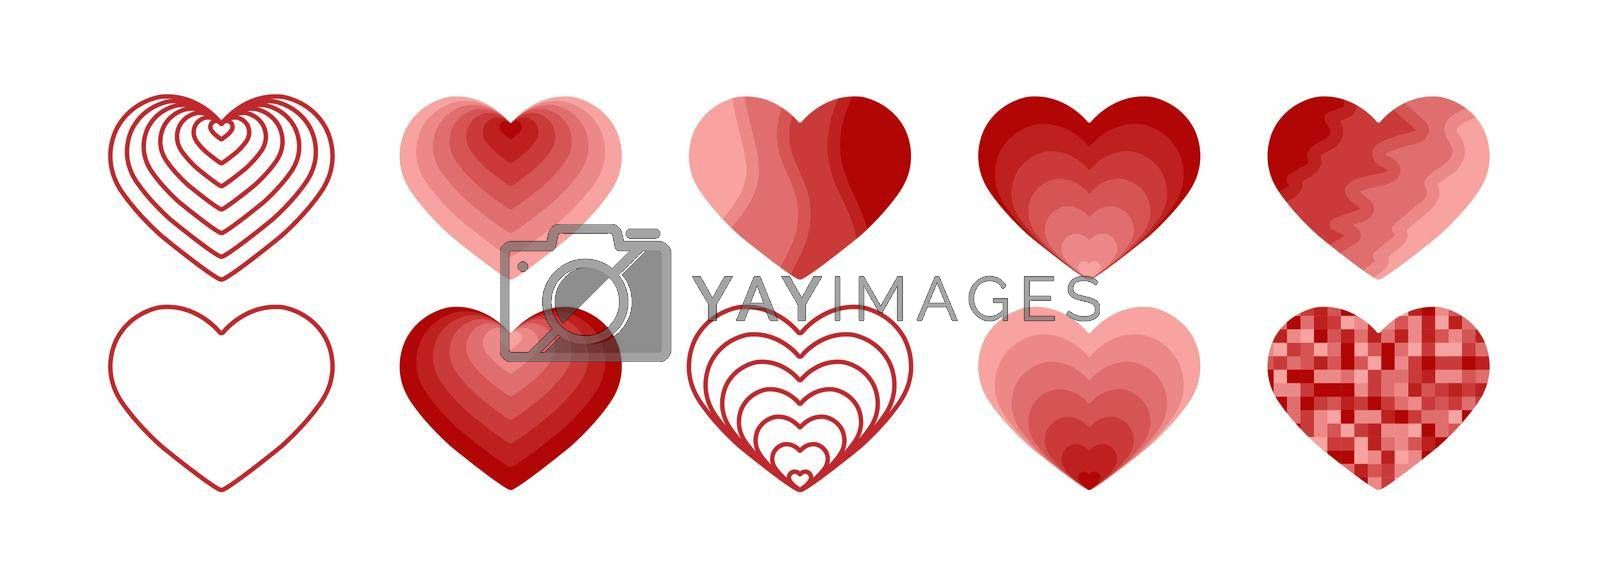 Royalty free image of A set of hearts for creative design and decoration of greetings by Grommik